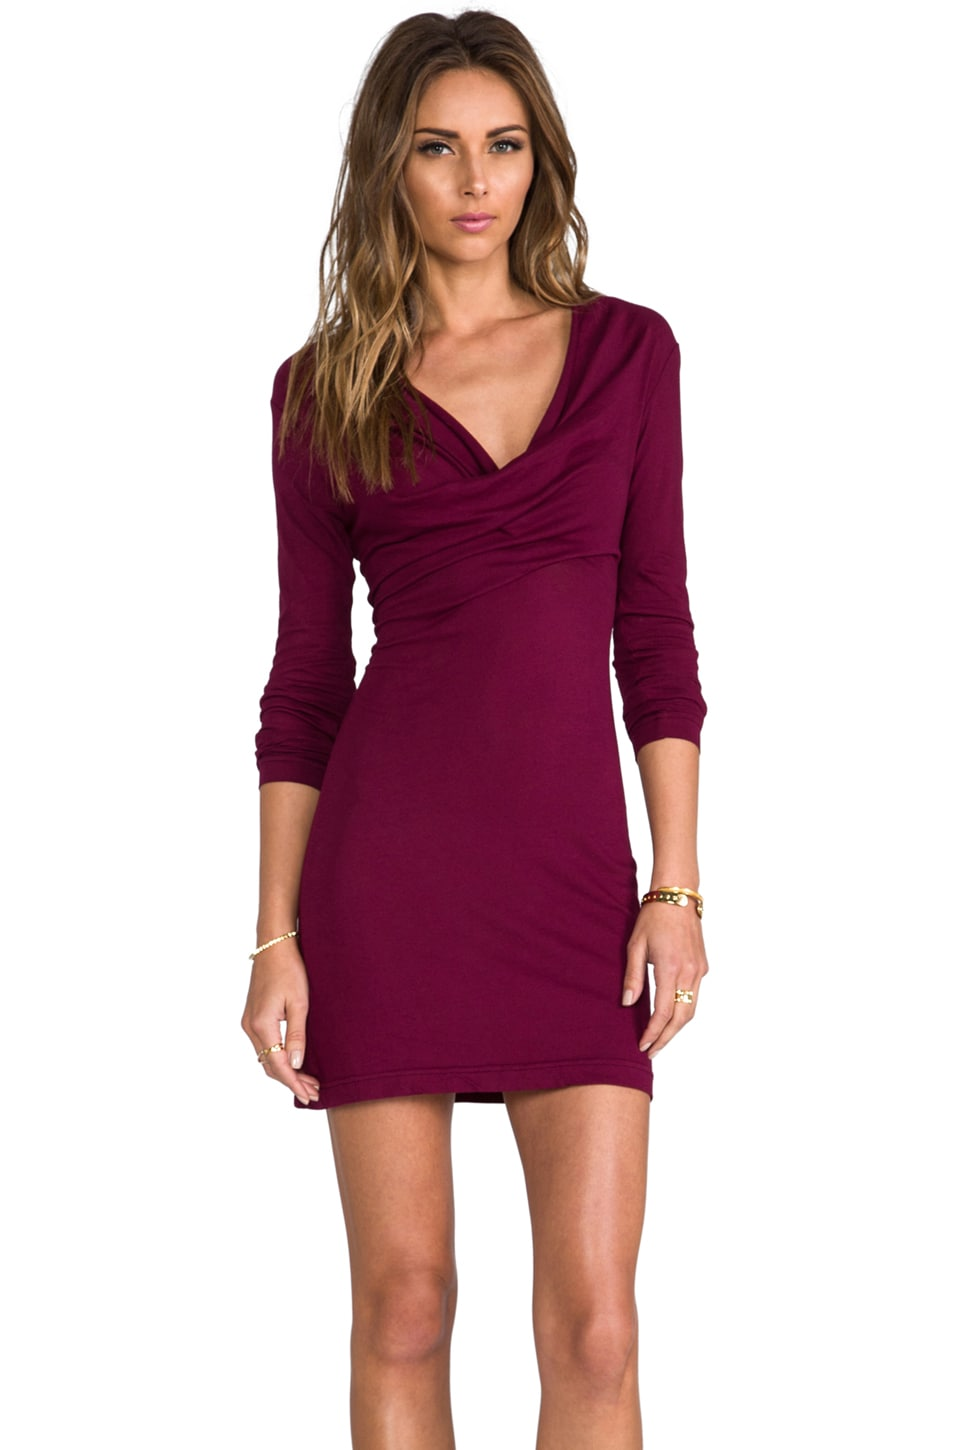 Bobi Light Weight Jersey Long Sleeve Dress in Merlot